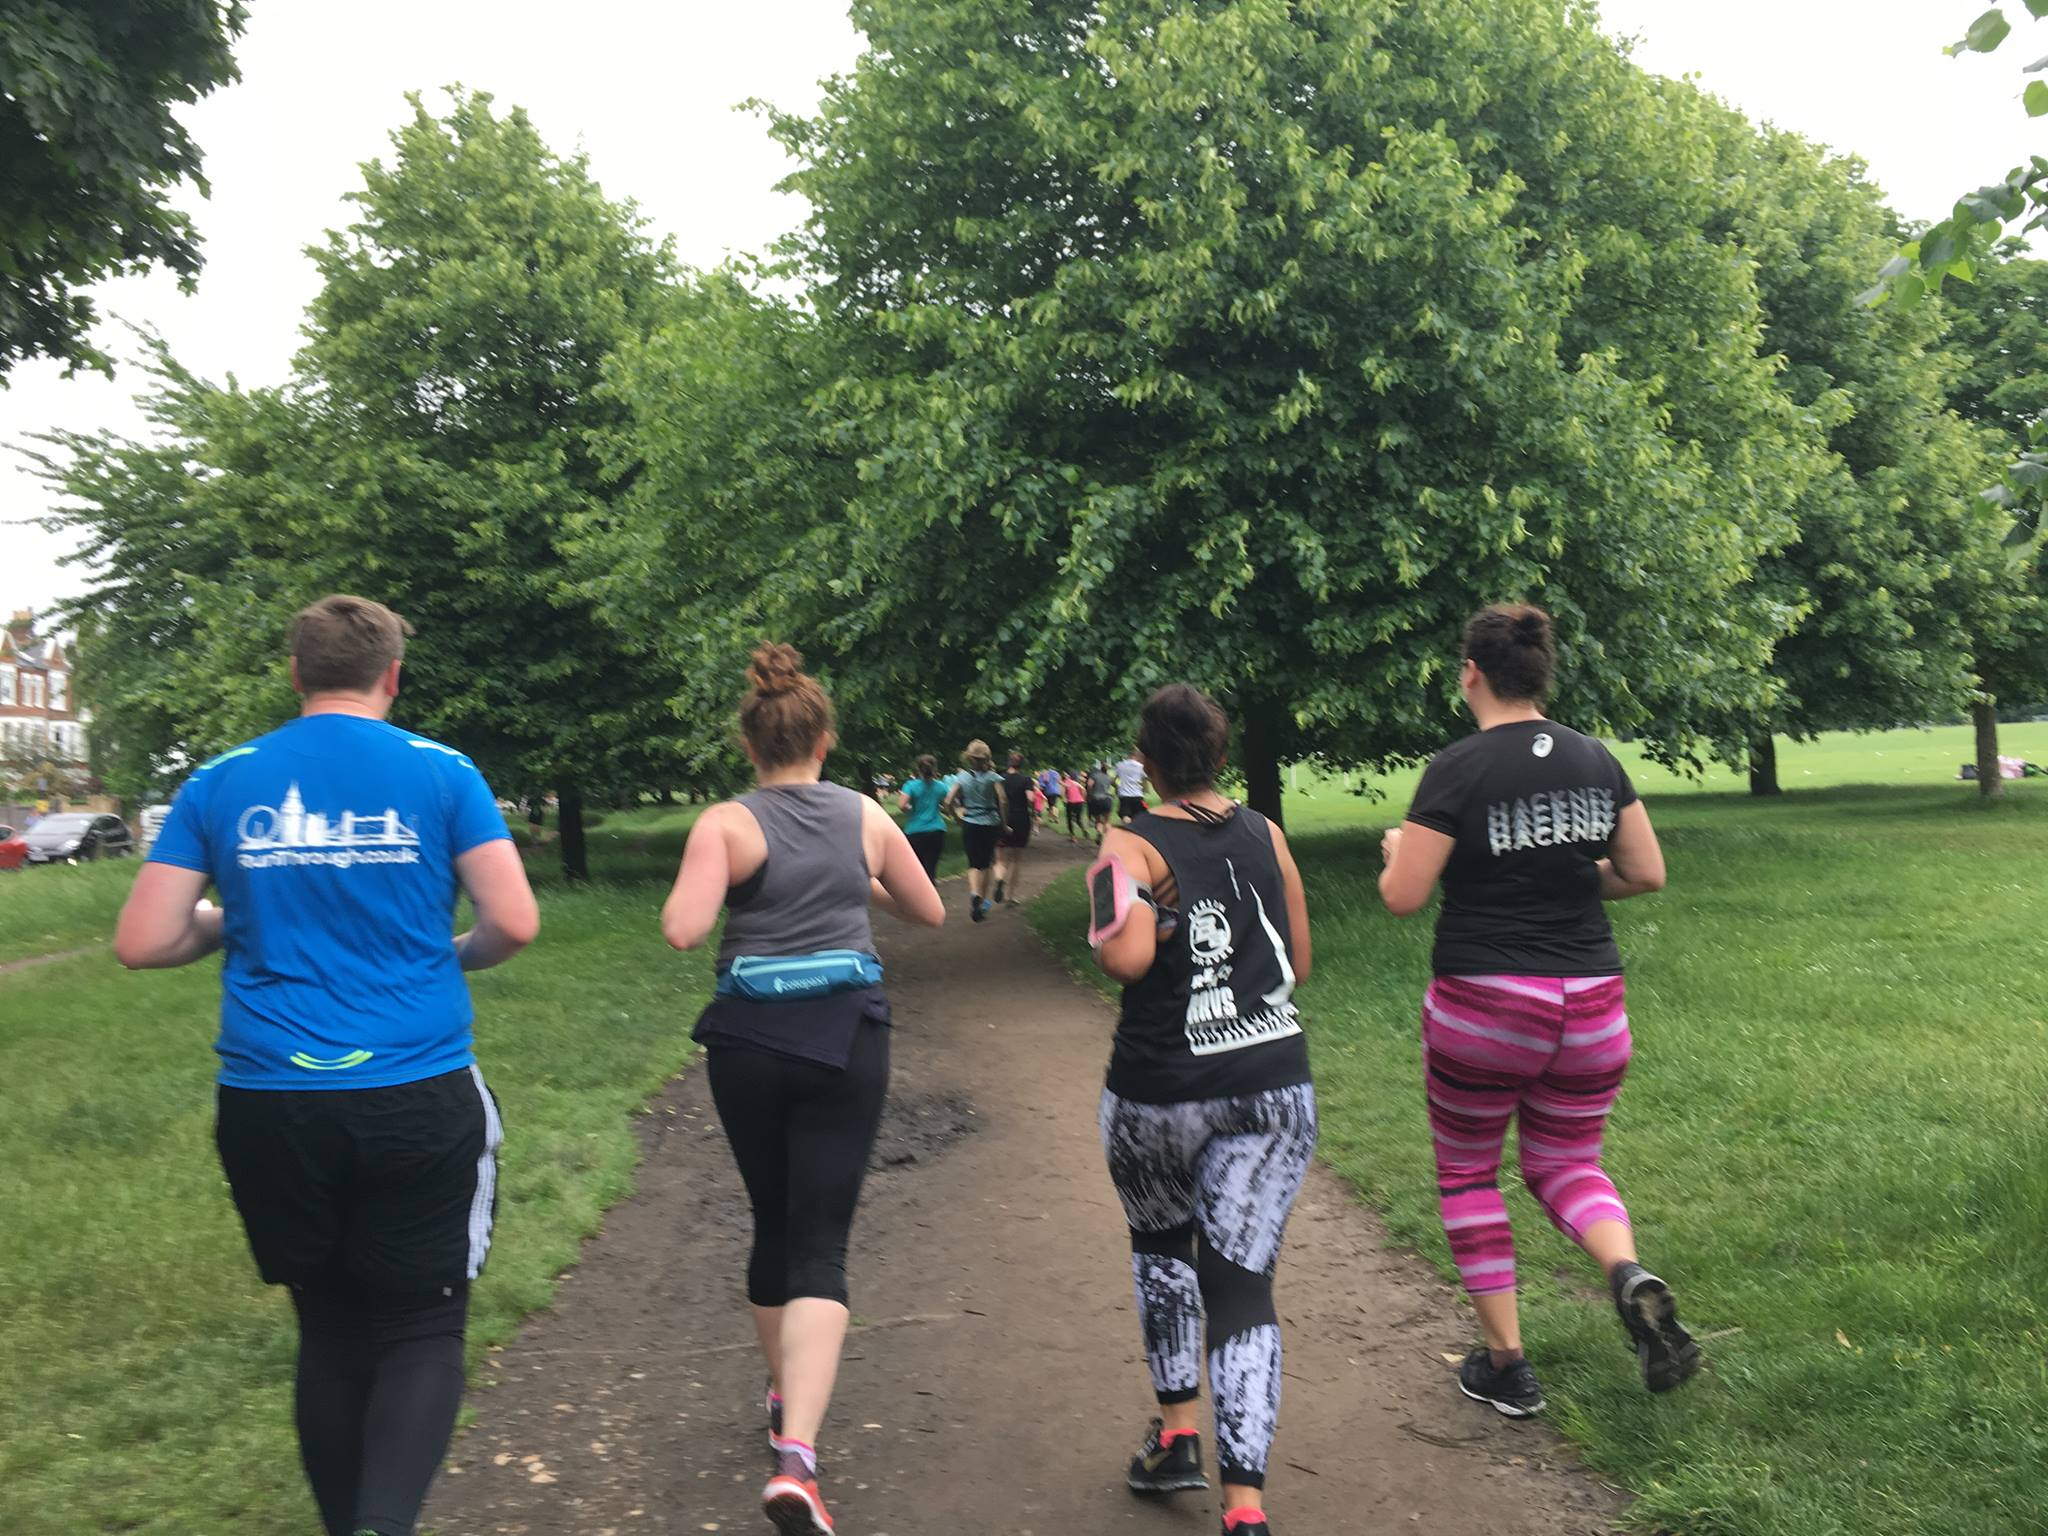 Clapham Common Park Run - A Pretty Place To Play